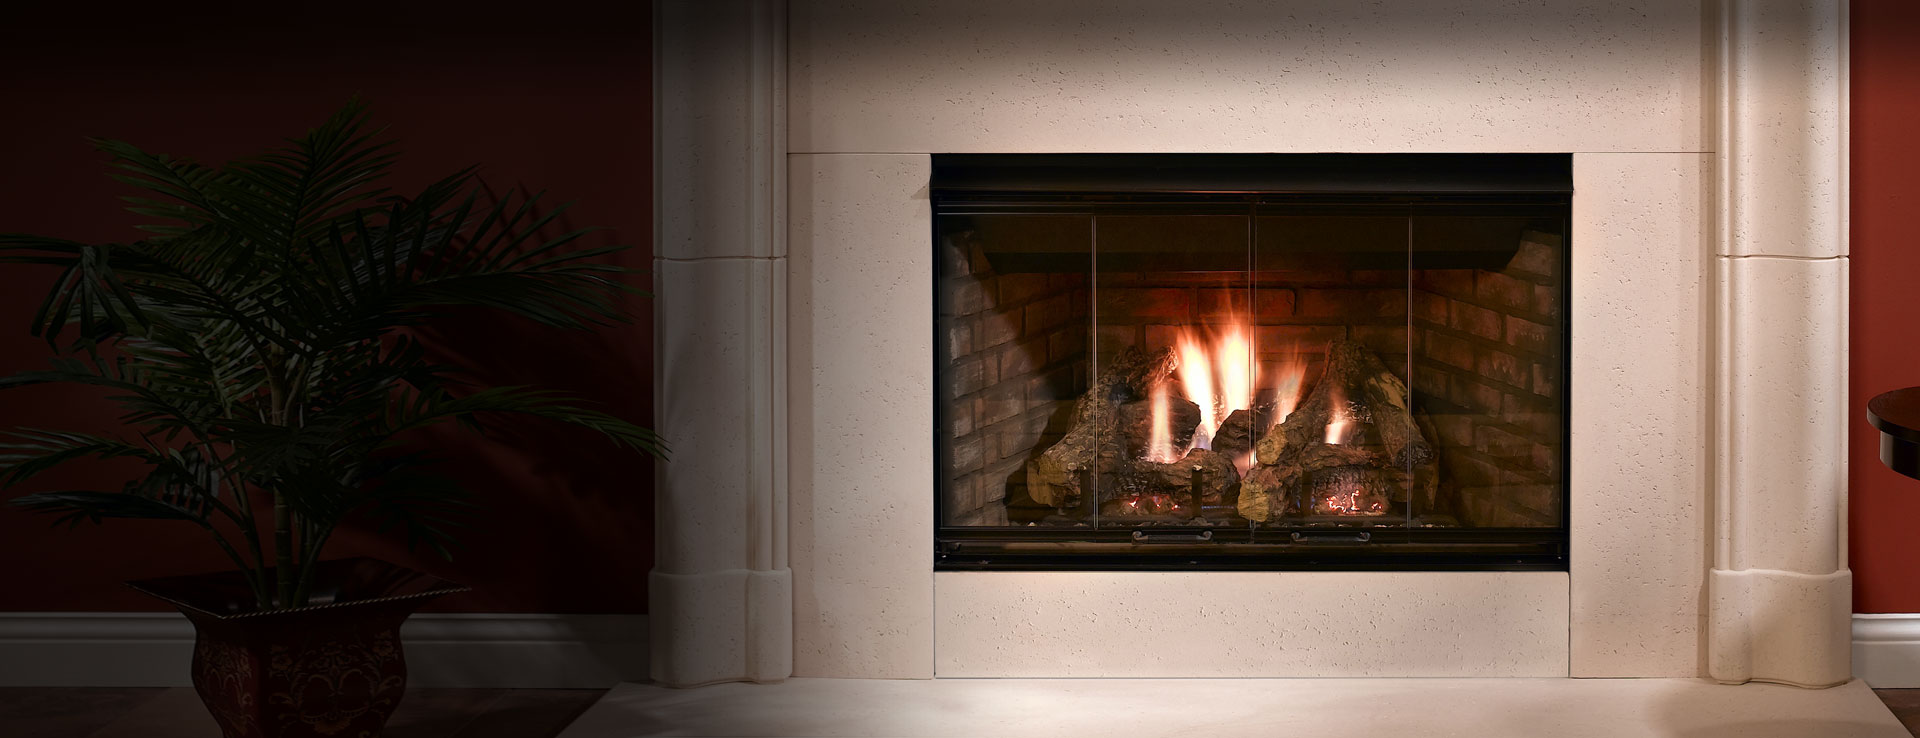 reveal gas fireplace open hearth gas fireplaces